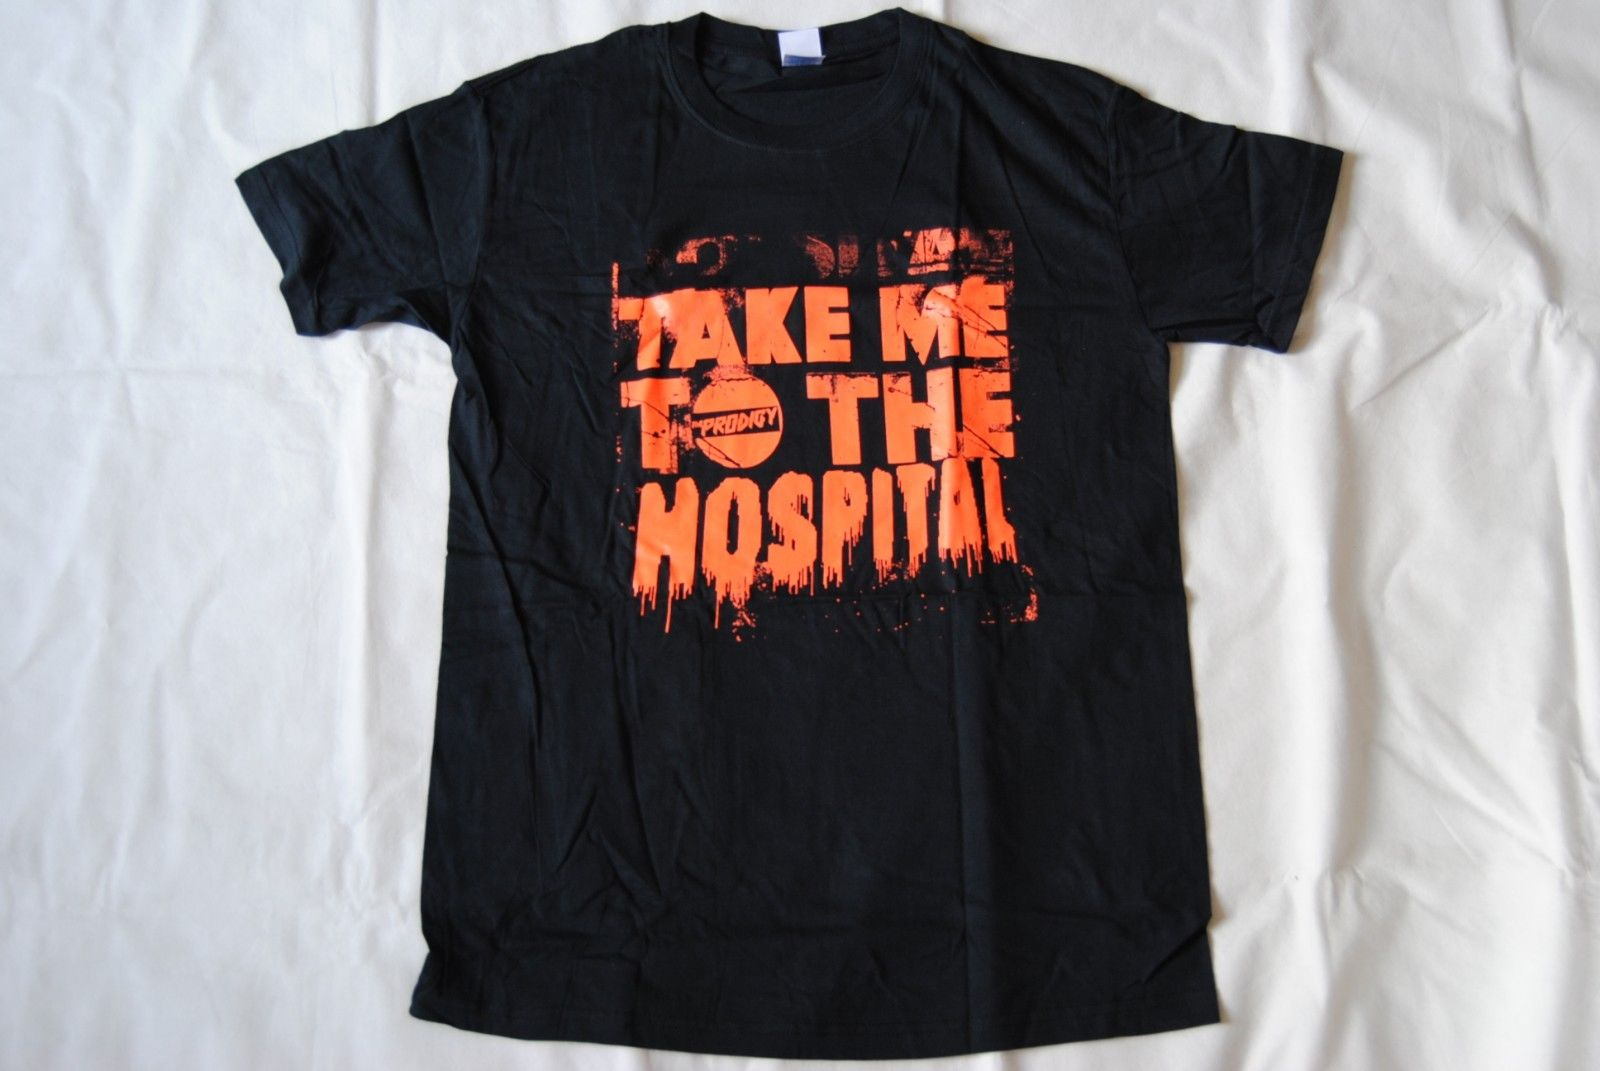 US $11 93 15% OFF|THE PRODIGY TAKE ME TO THE HOSPITAL T SHIRT NEW OFFICIAL  FIRESTARTER BREATHE-in T-Shirts from Men's Clothing on Aliexpress com |